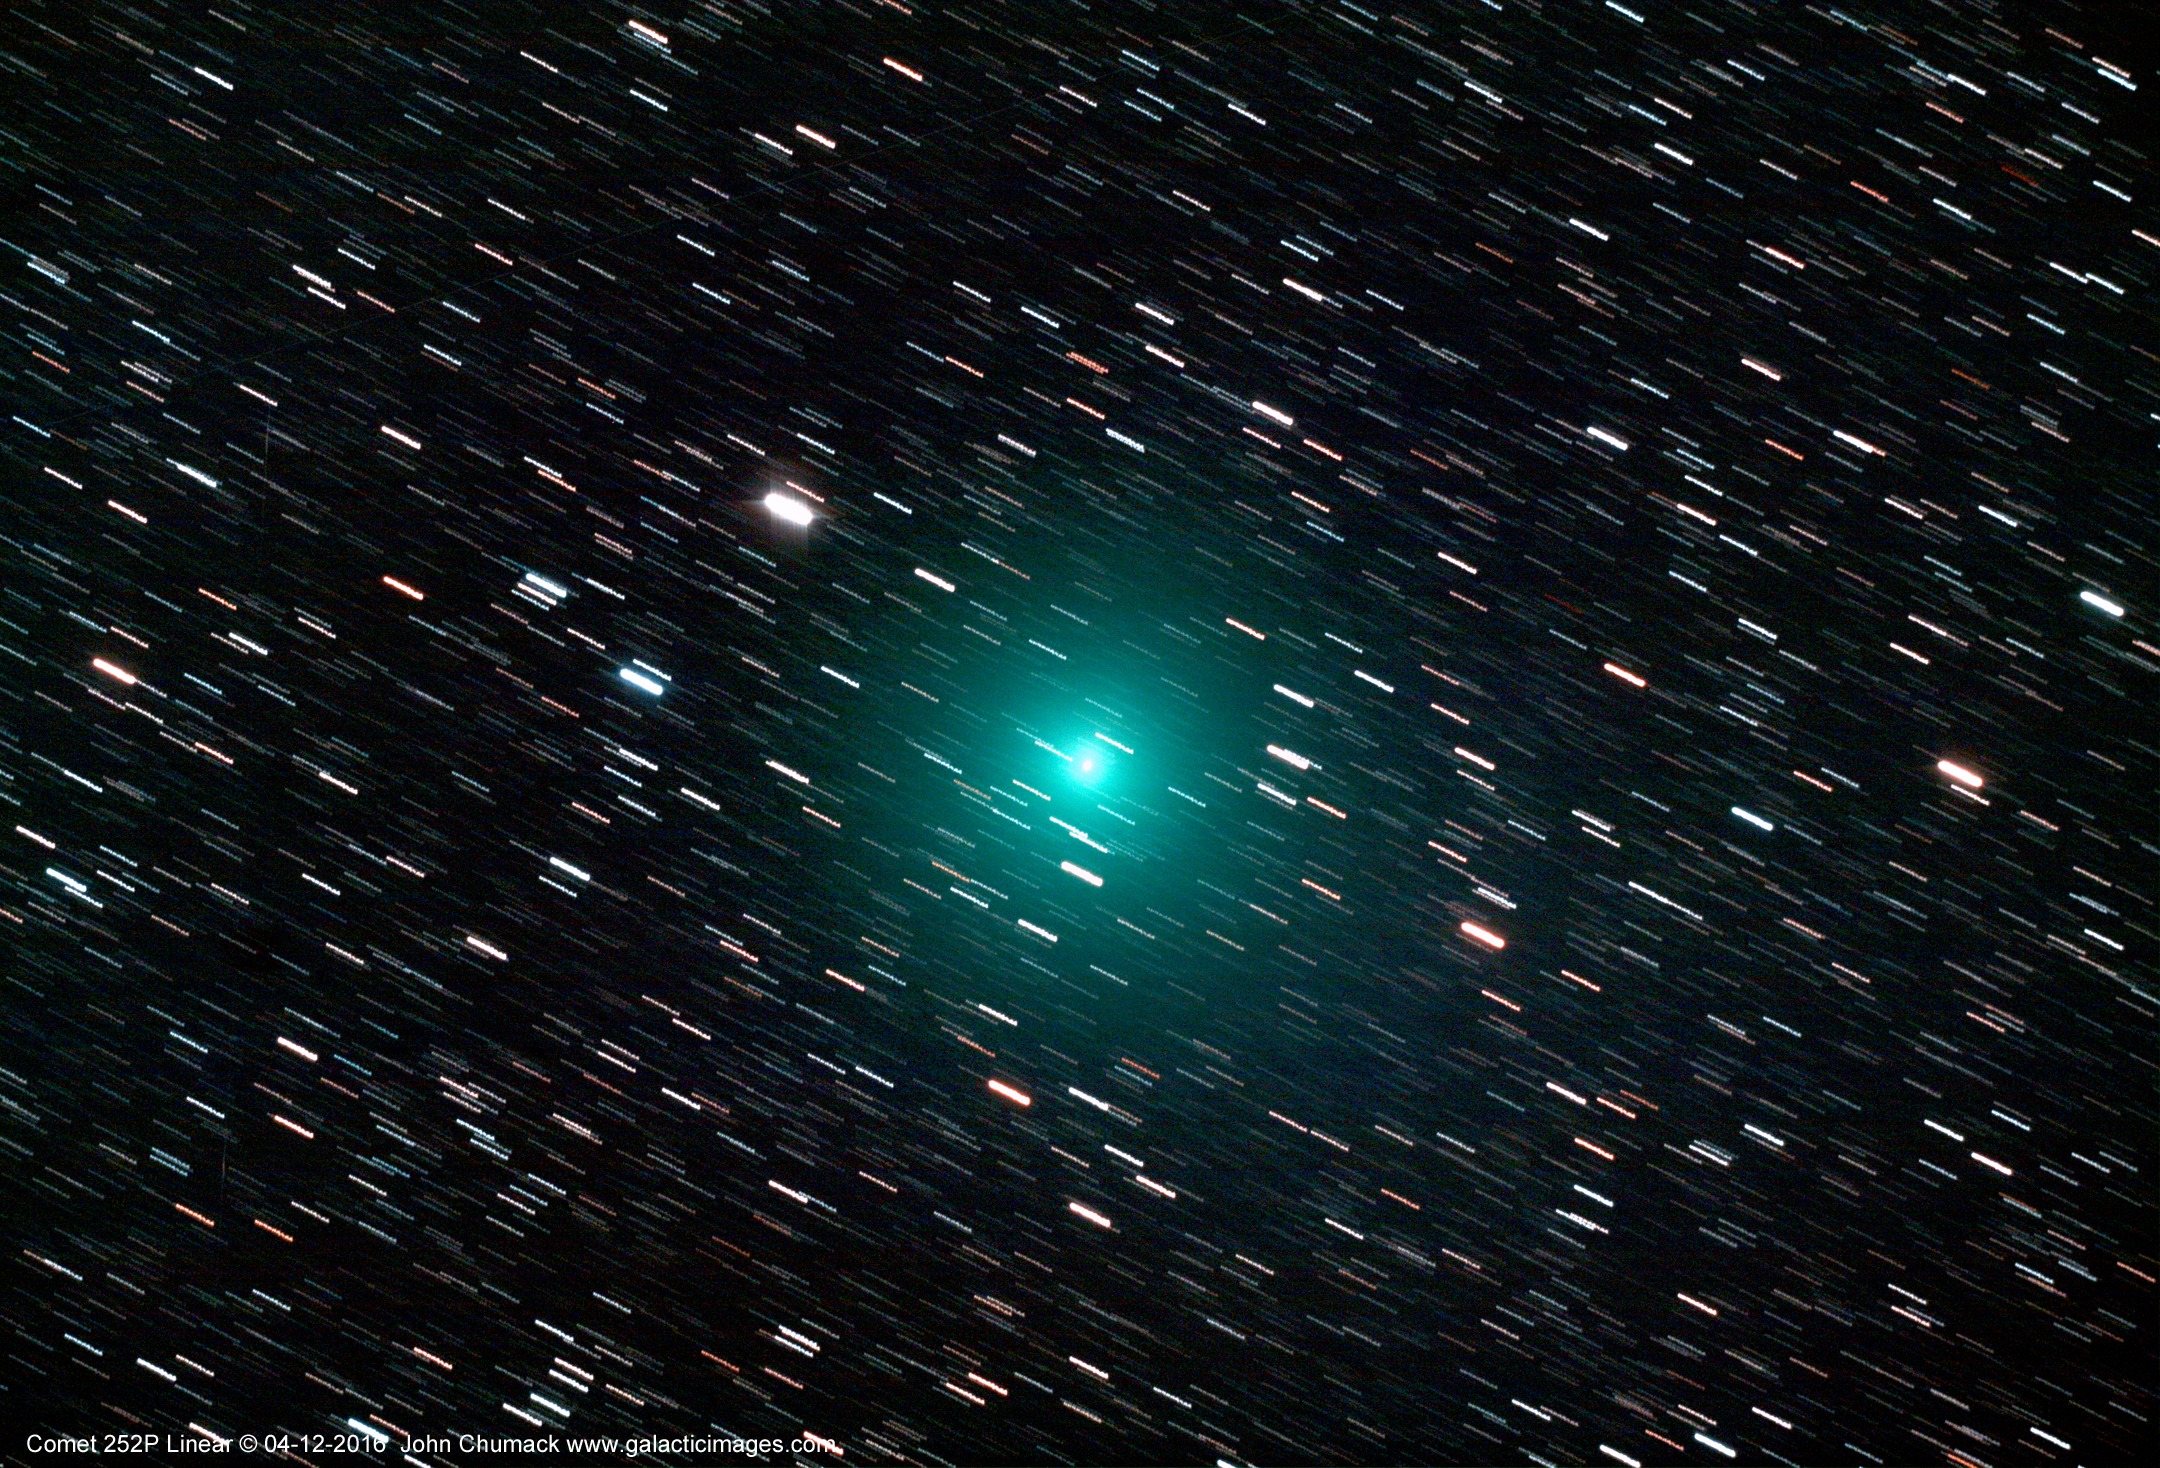 Comet Linear 252P by Chumack